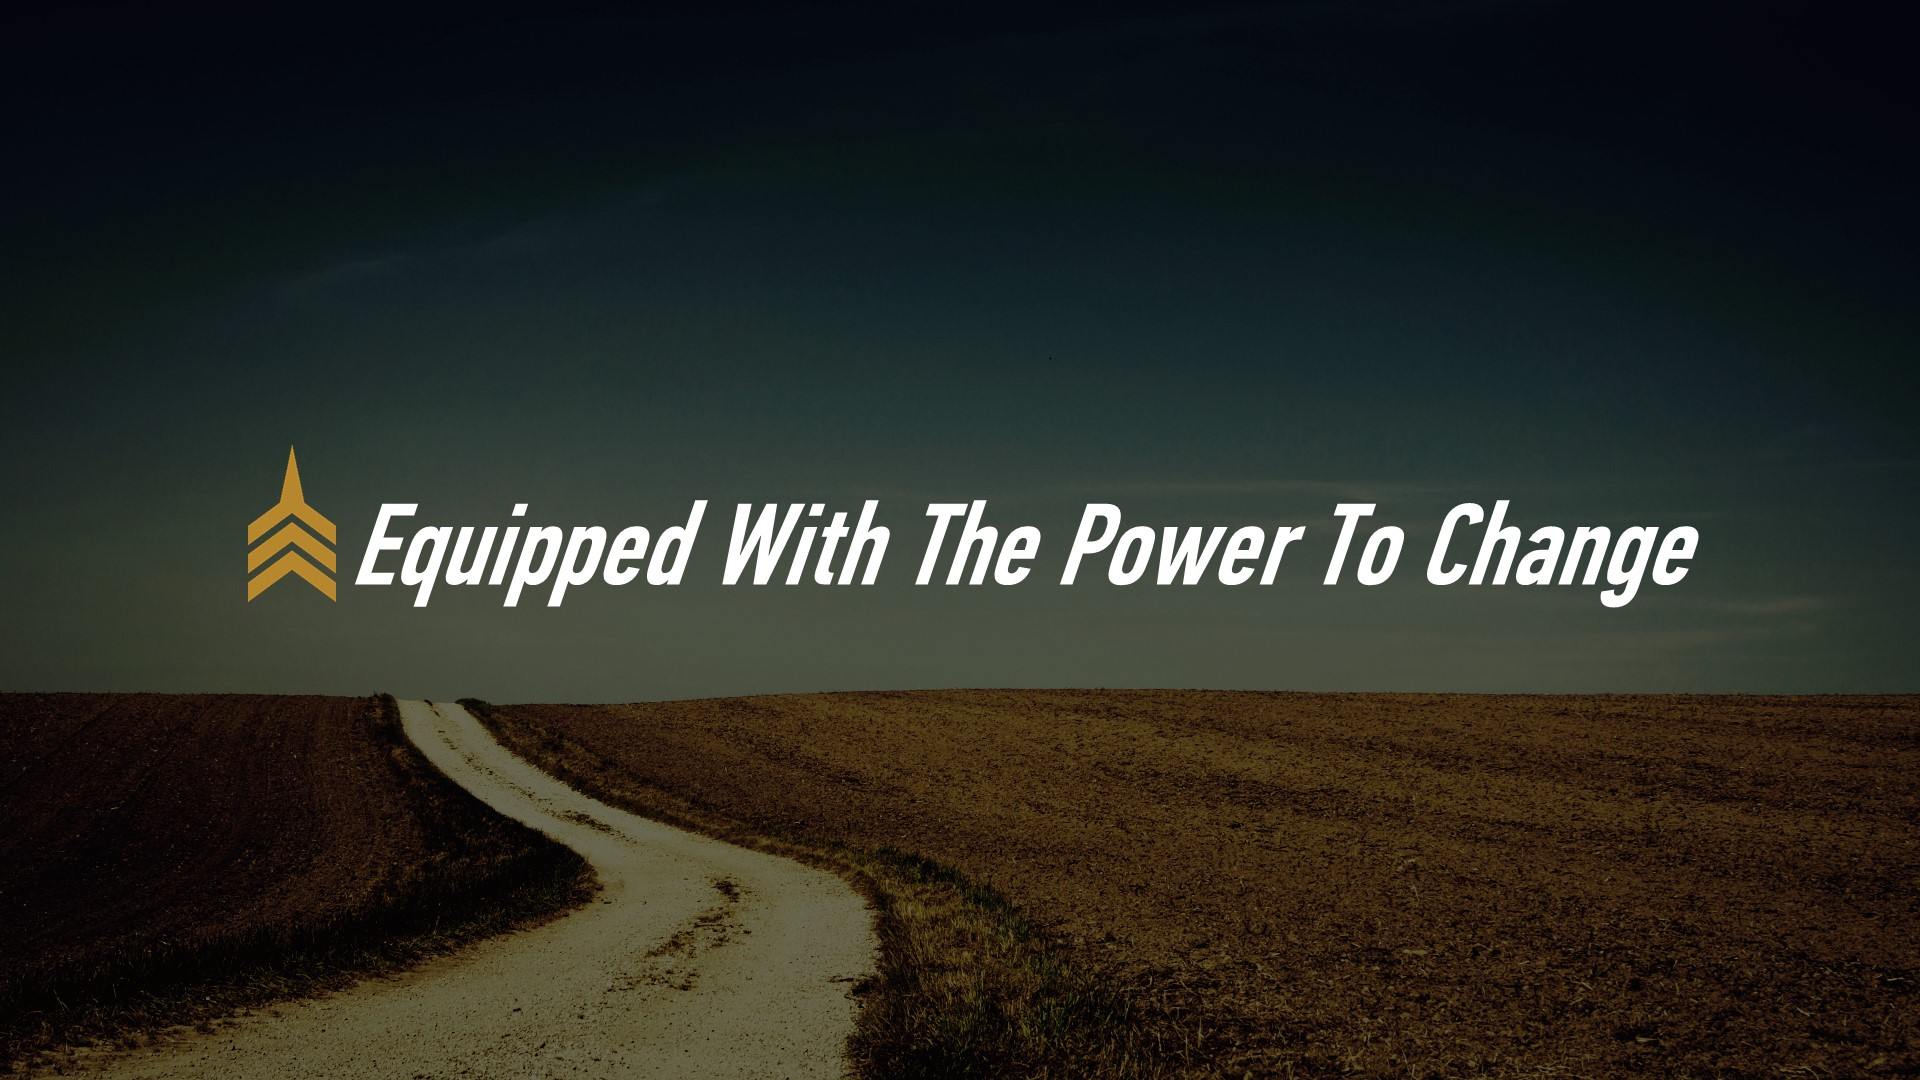 20181104 Equipped With The Power To Change.JPG